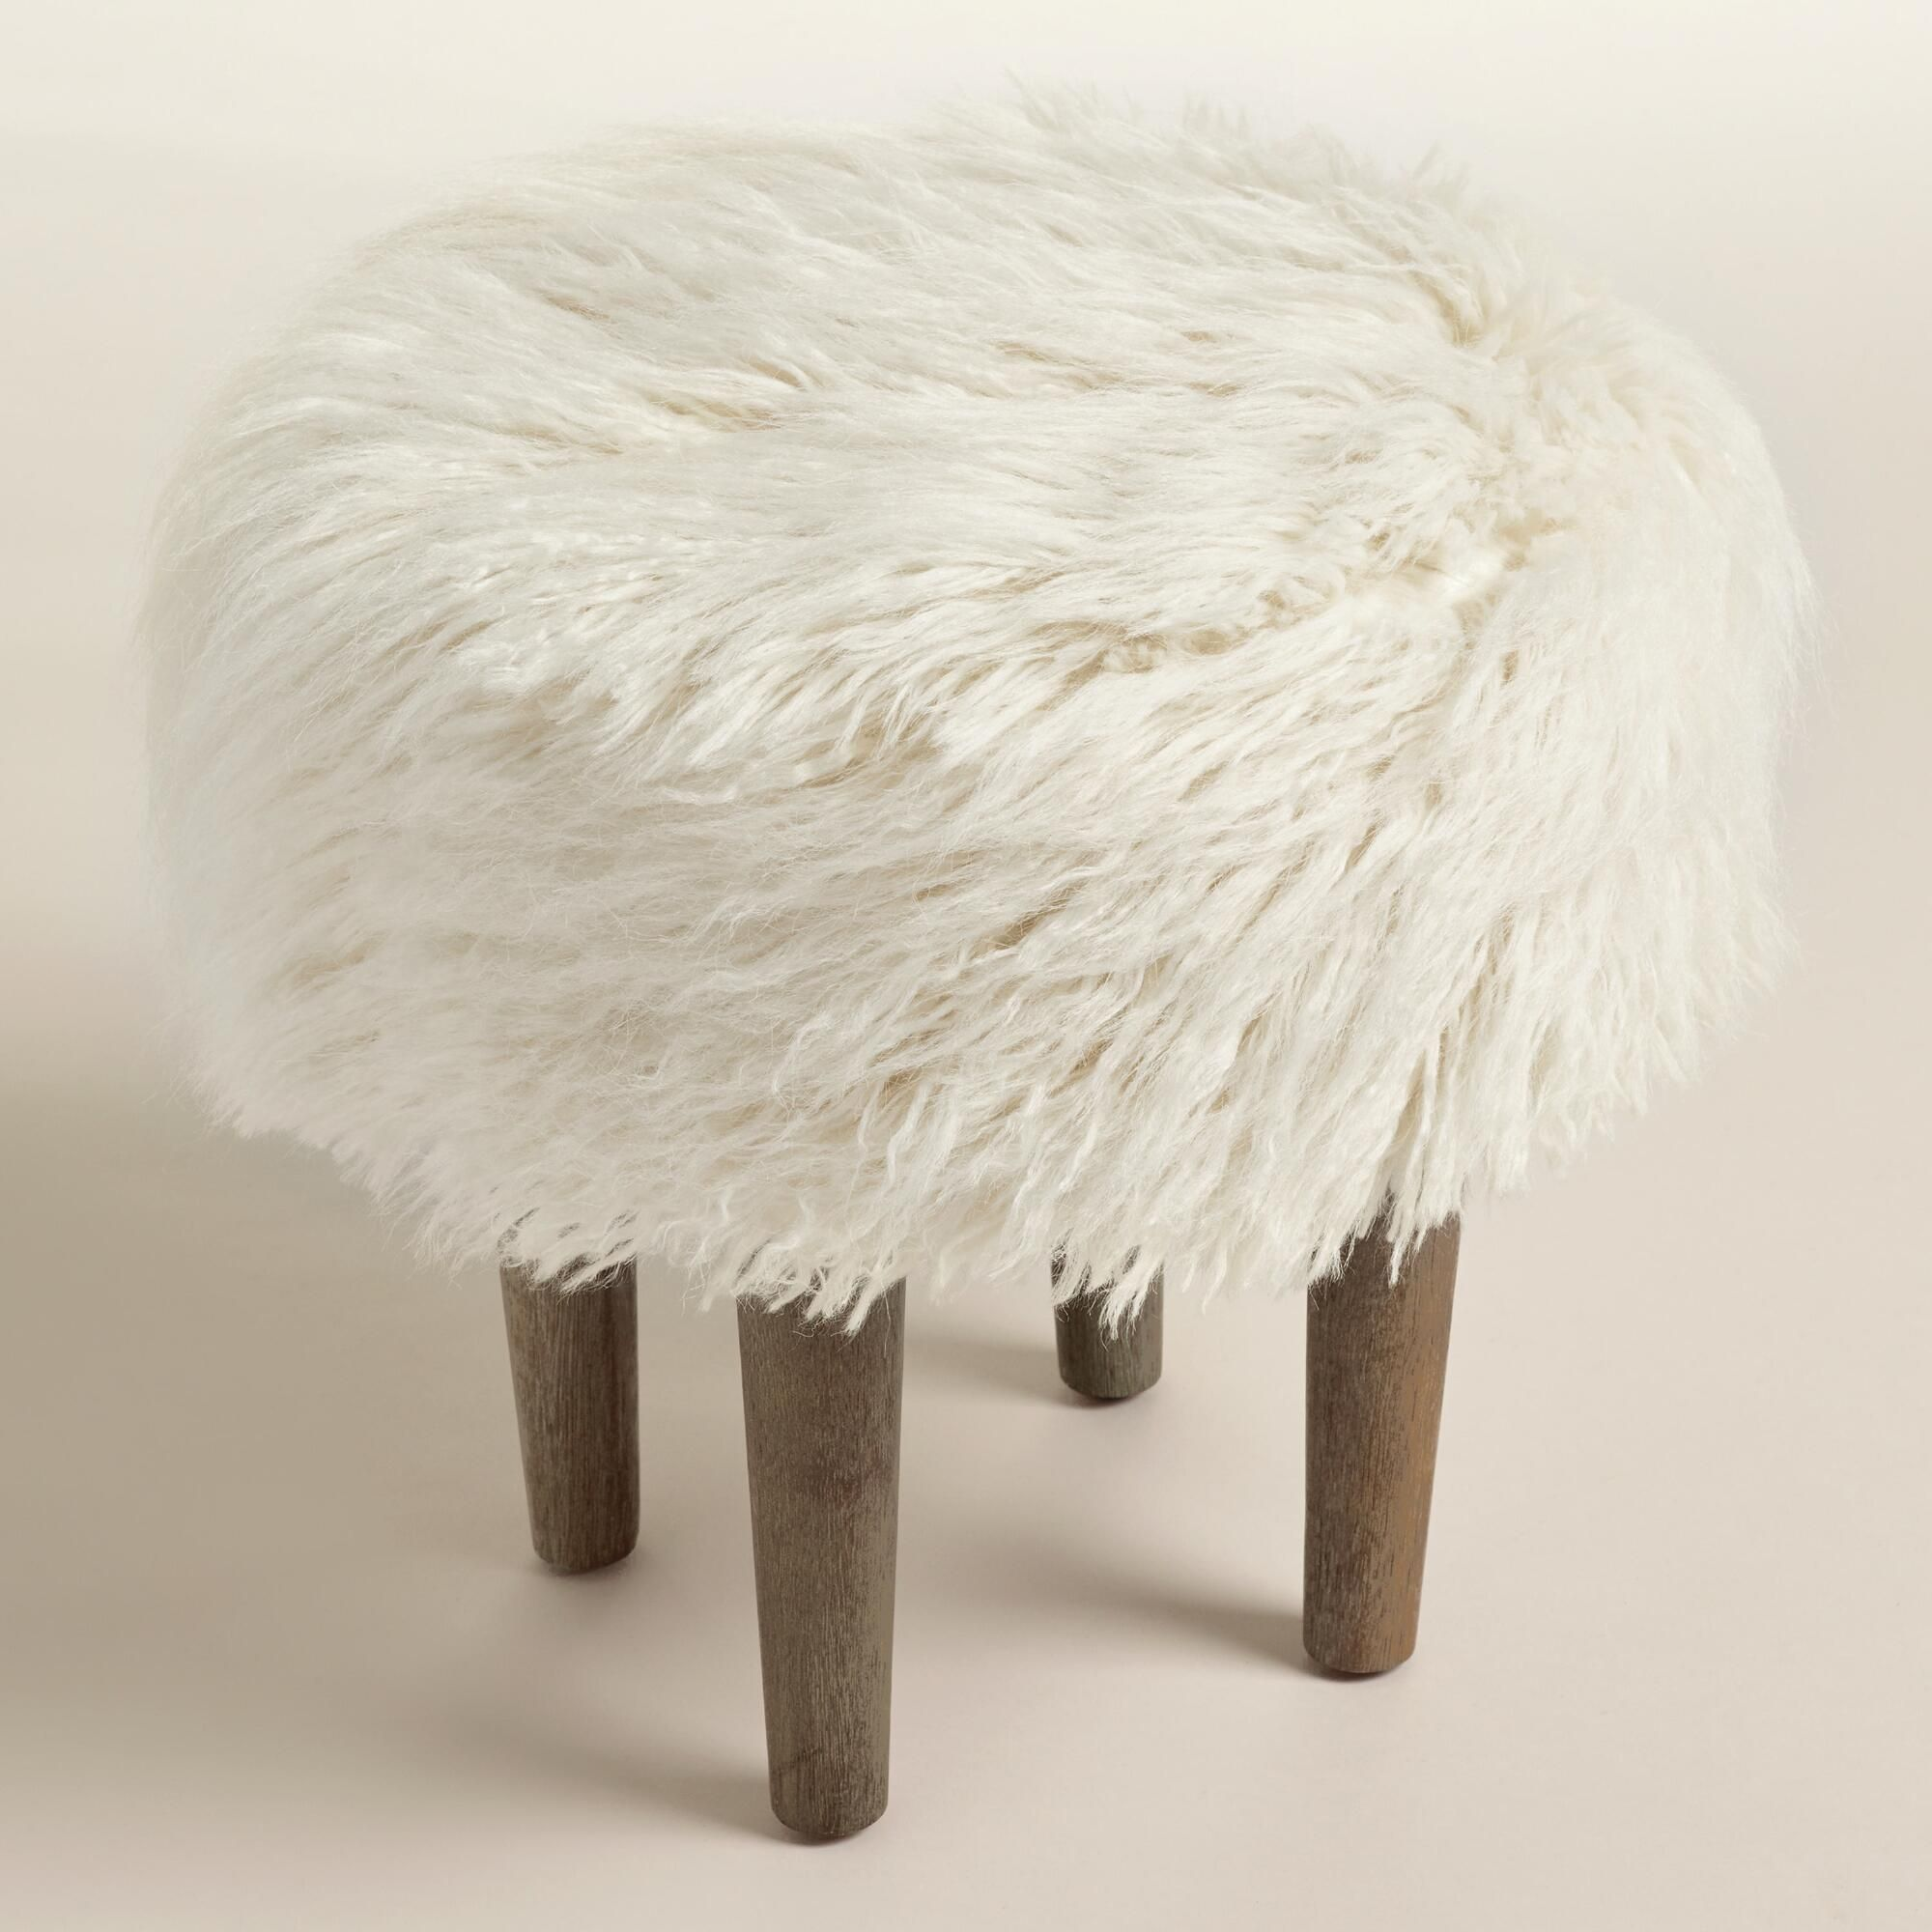 A Simple Diy Fur Bench Is Perfect For When The Air Starts To Turn